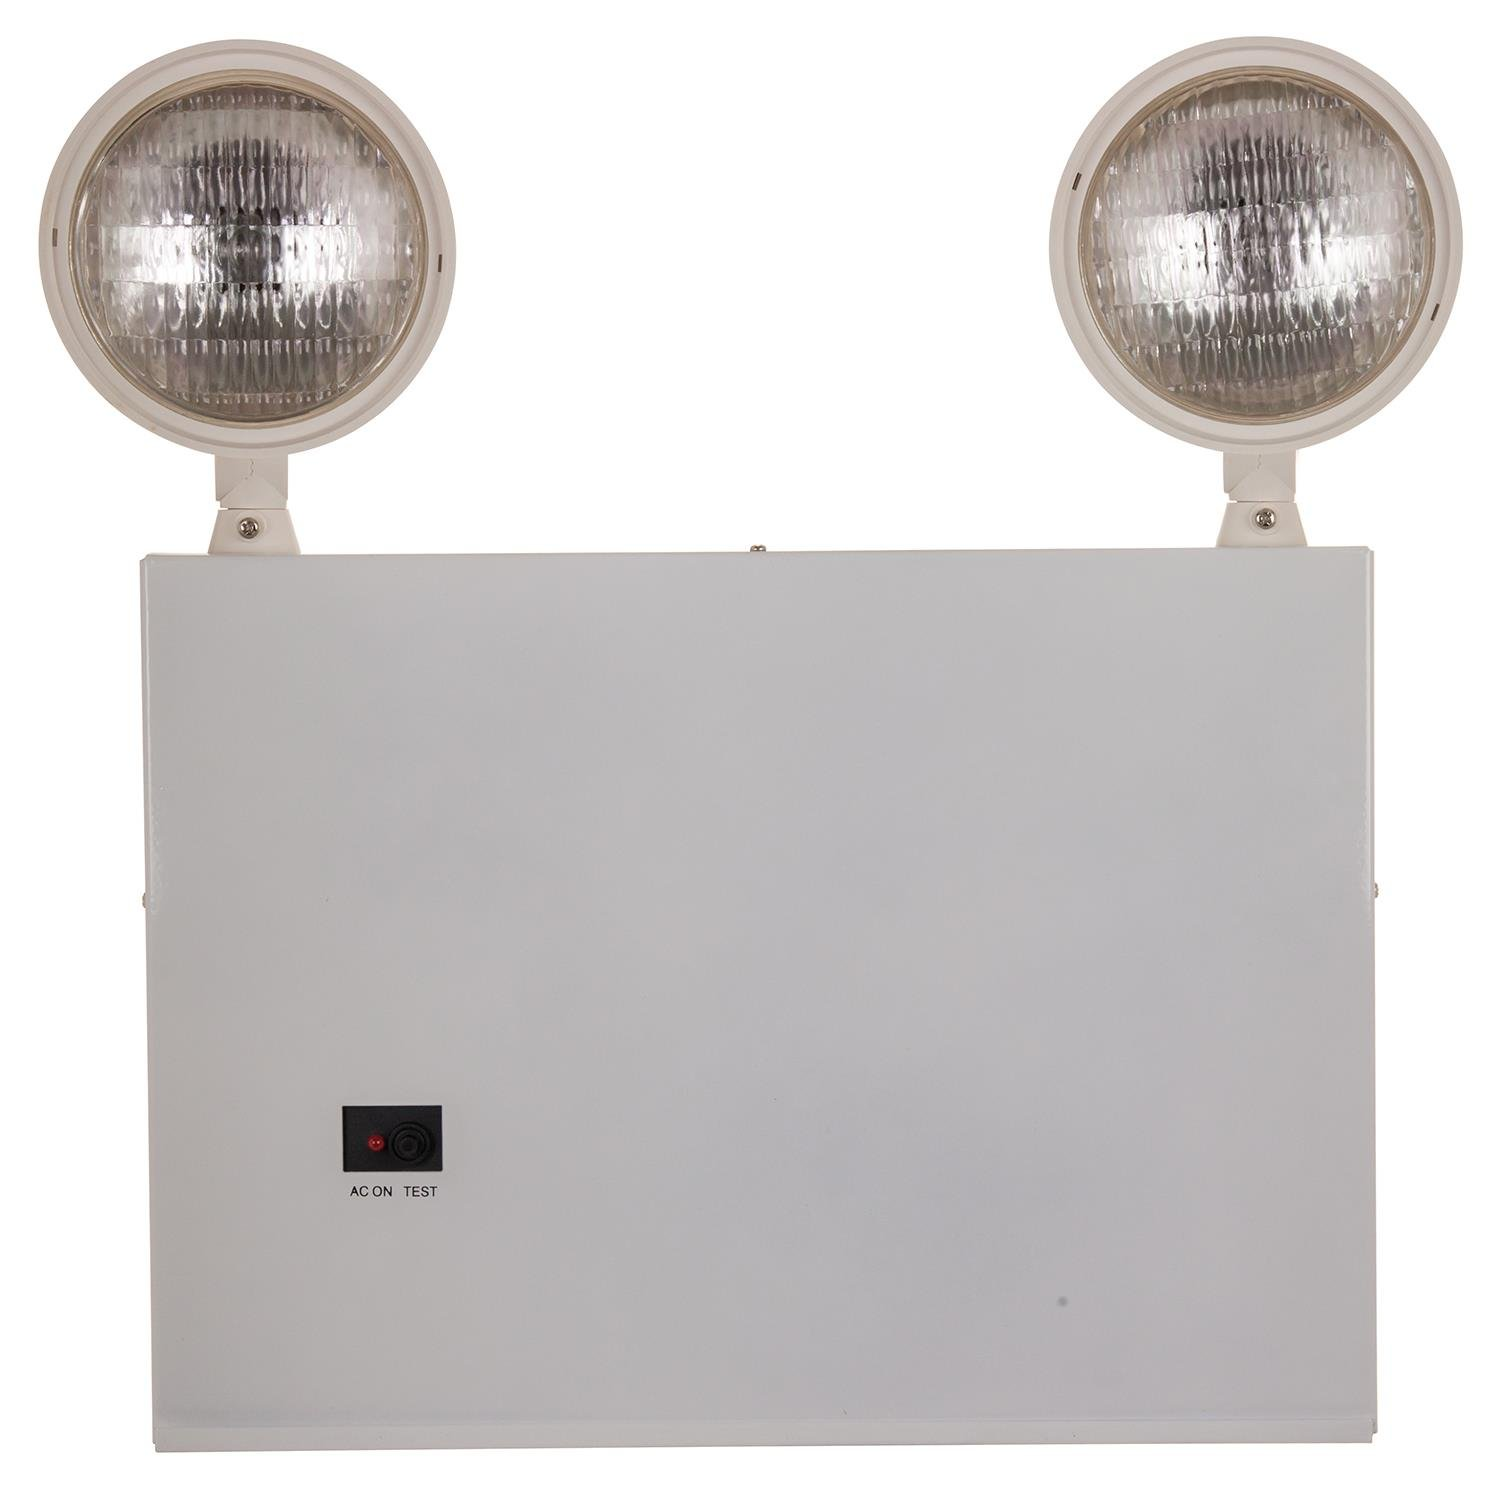 Sunlite EMER/6V/3H/27W/9W/NYC Commercial And Residential Emergency Exit Light